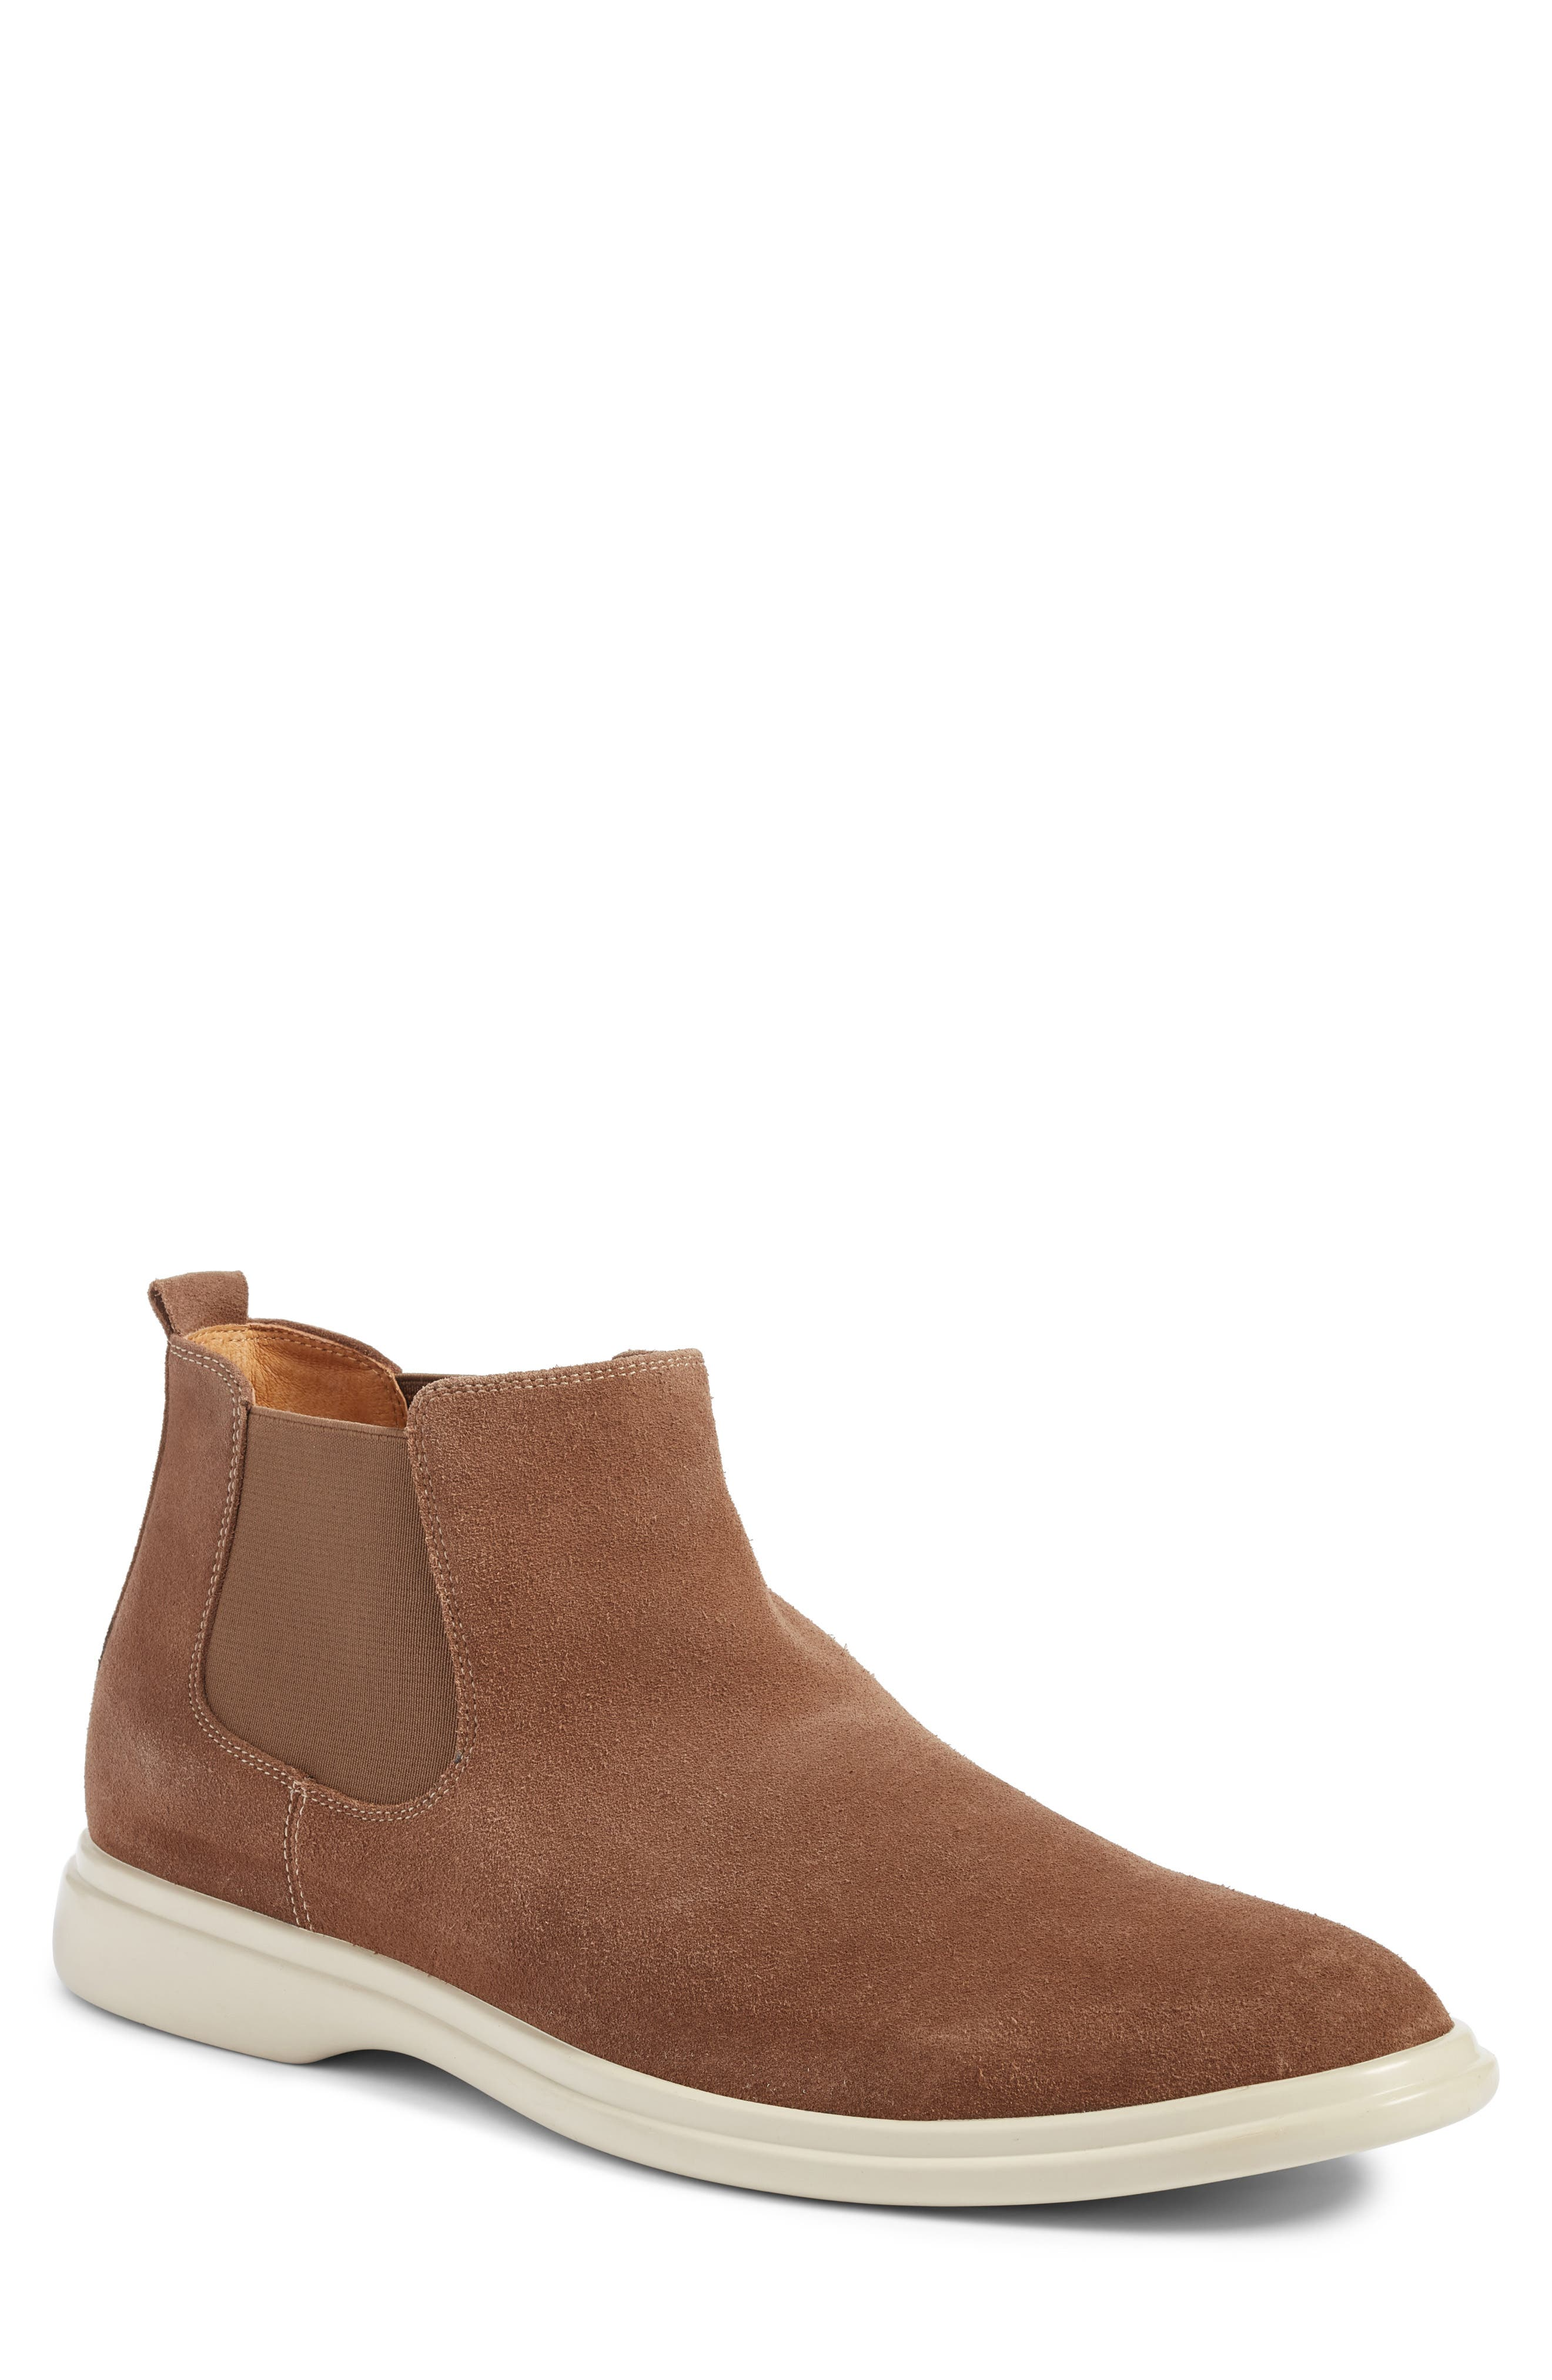 Washougal Chelsea Boot, Main, color, 250